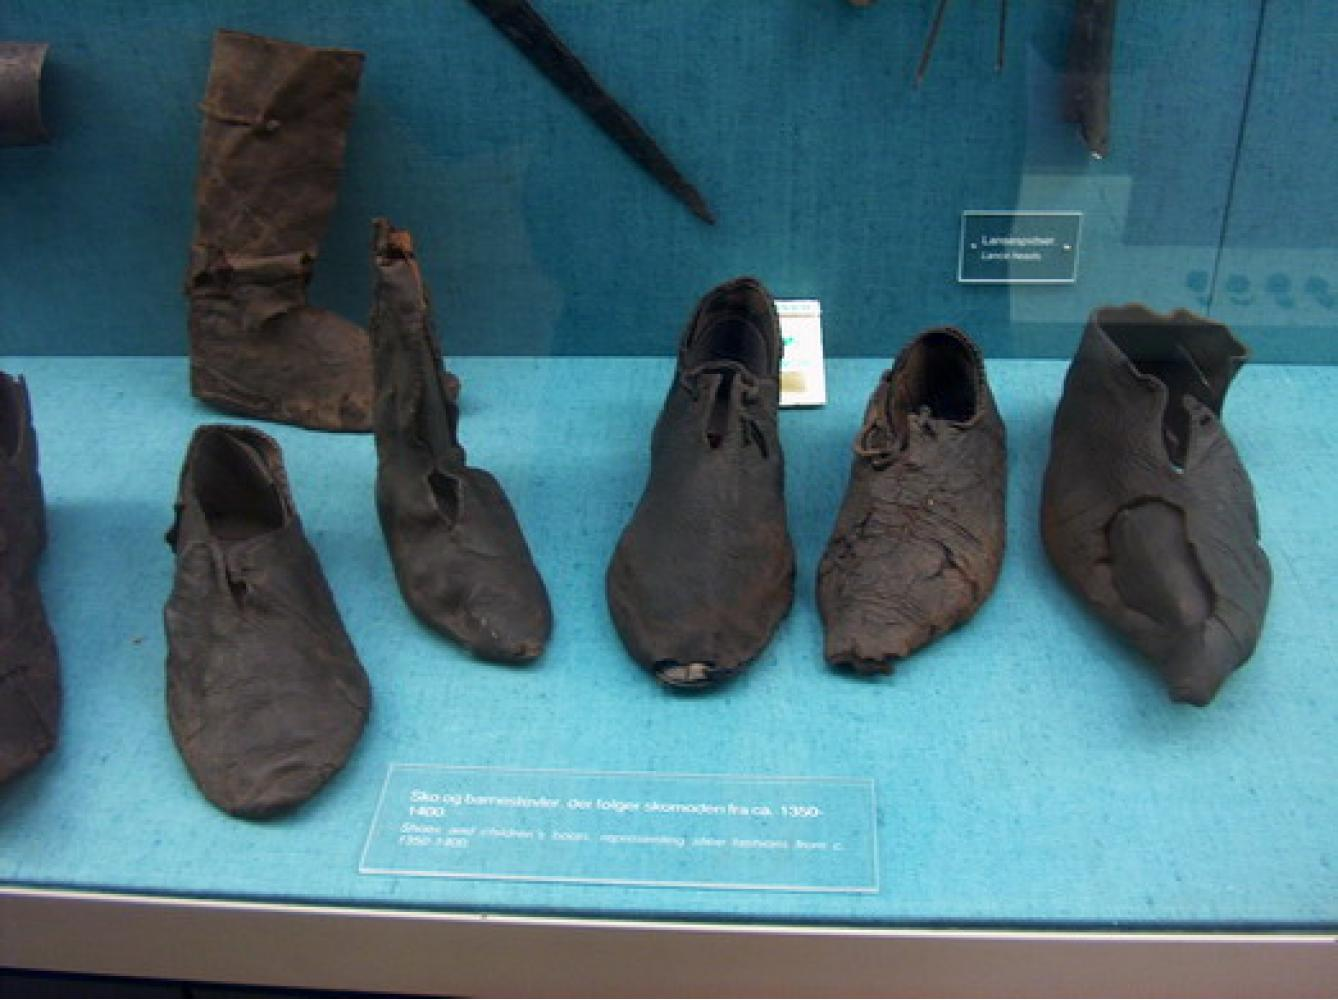 Boots from Baynards Castle: Historical Sources Image